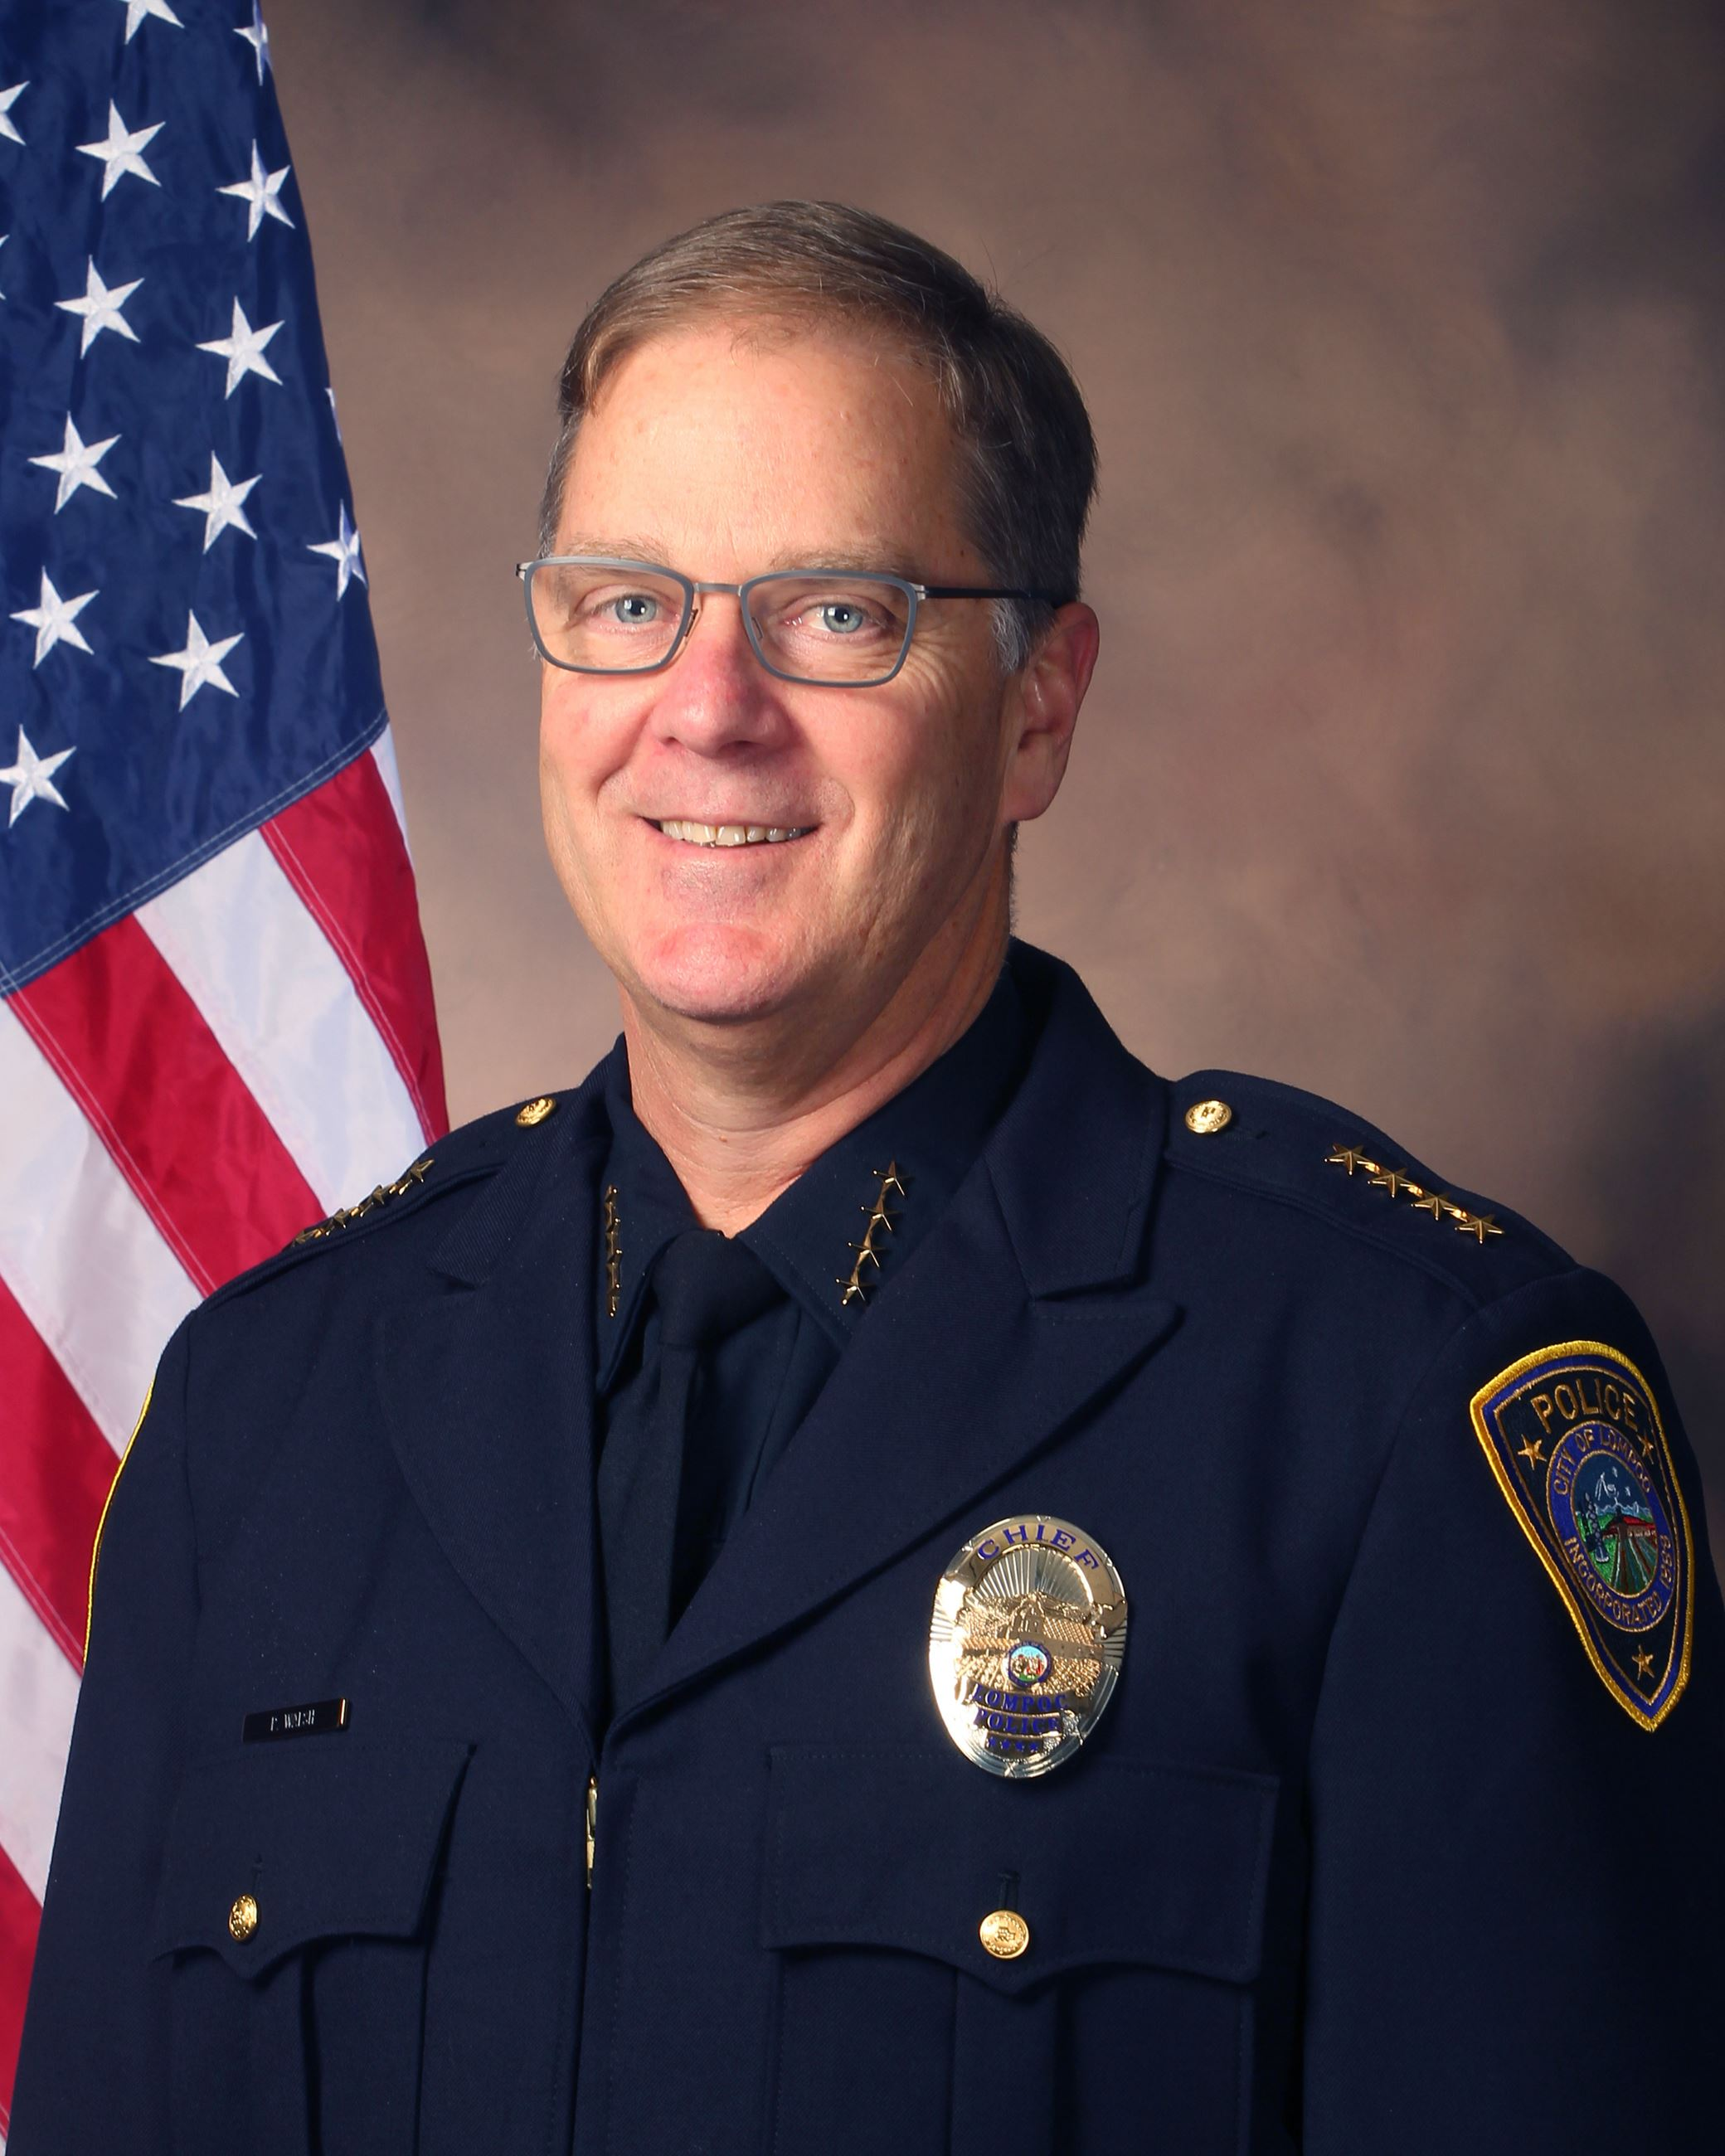 Pat Walsh - Chief of Police